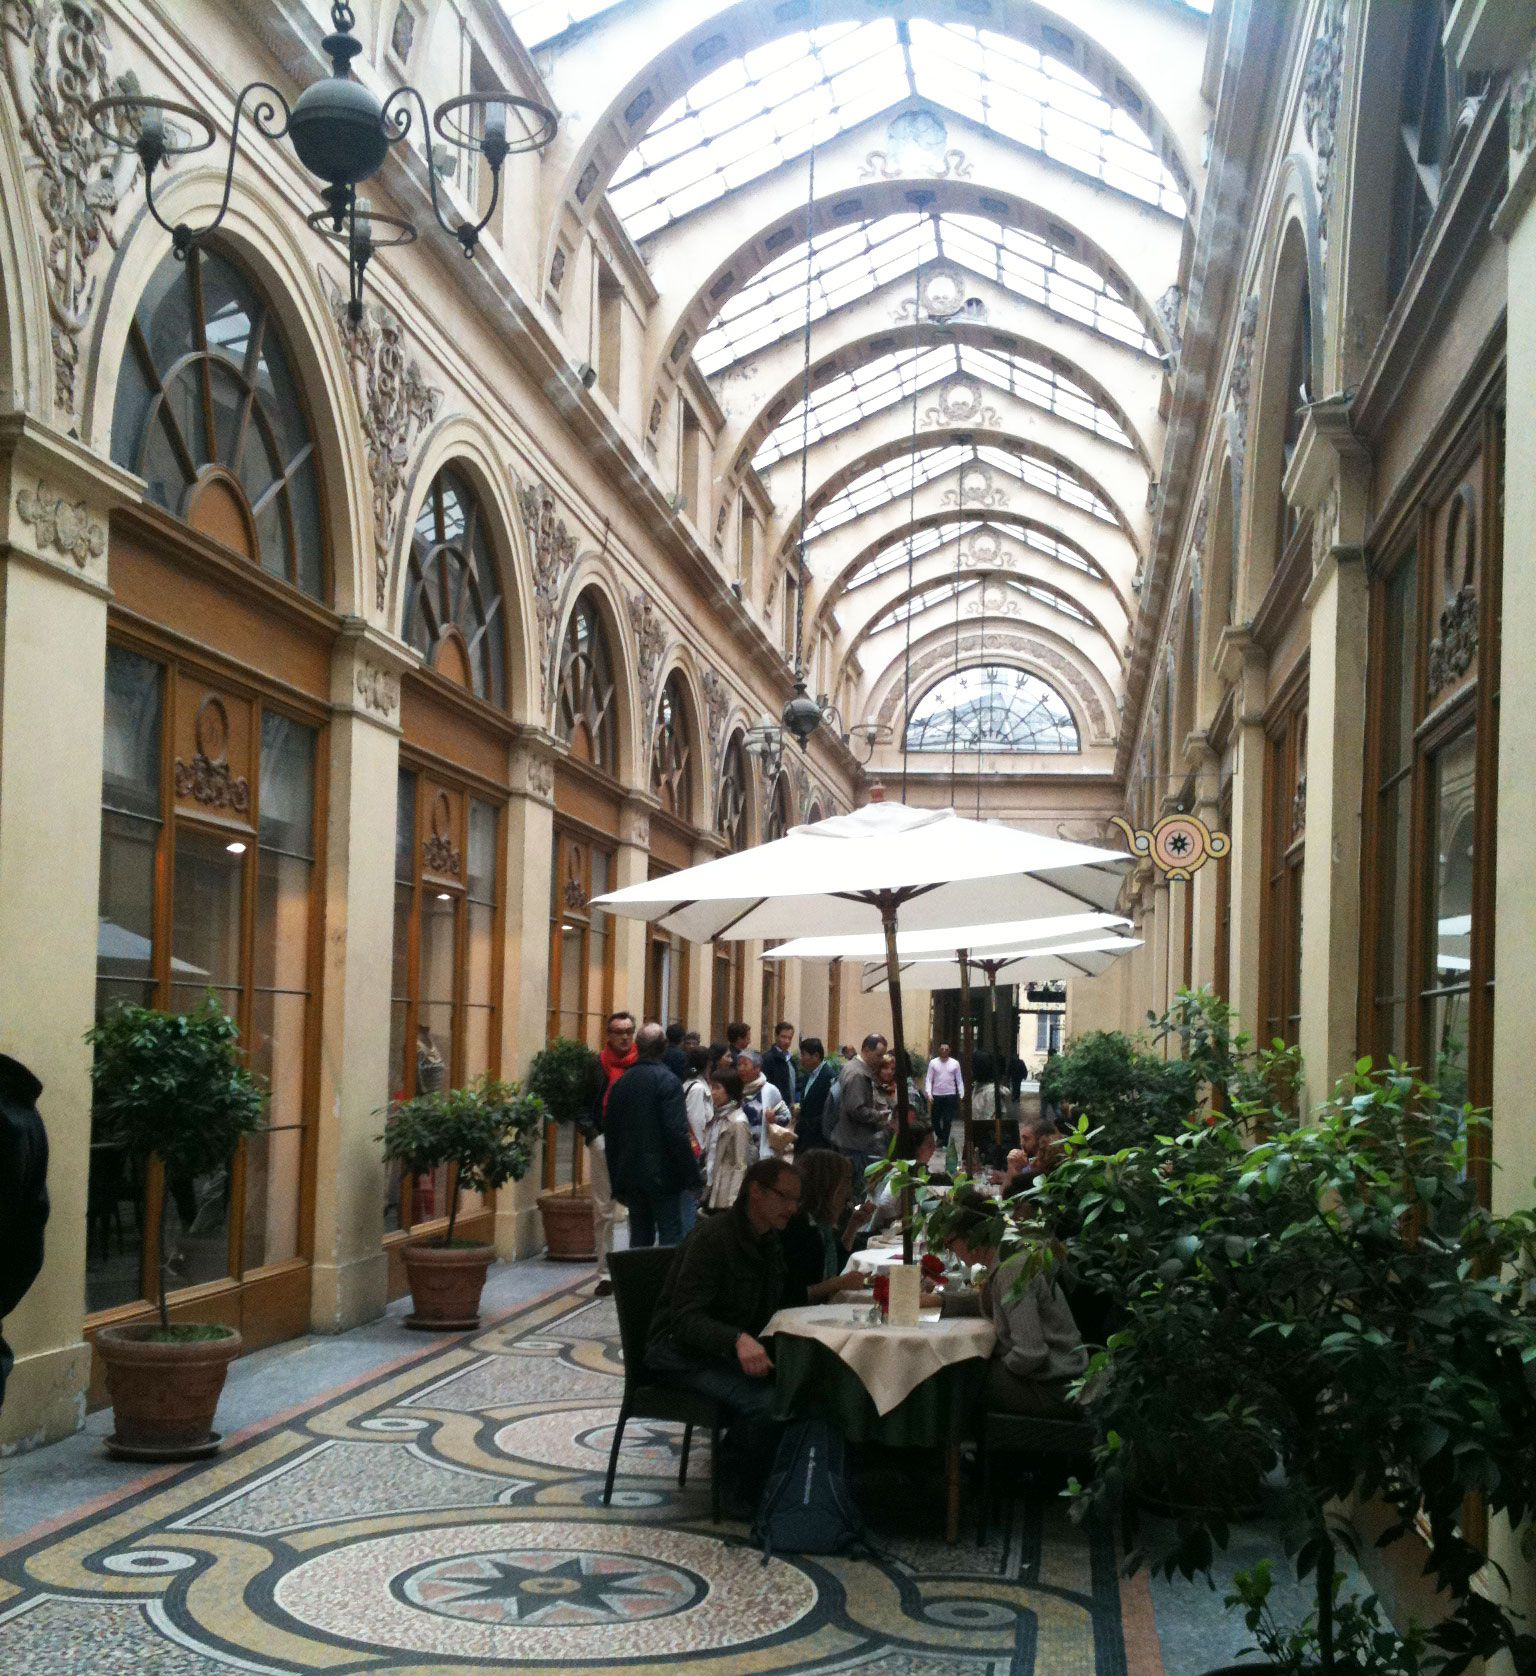 A Priori Thé: A Hidden Gem of Paris. A Priori Thé is an American-run tearoom in one of the prettiest covered galleries in Paris, the Galerie Vivienne. Great coffee, teas, and light lunches; their desserts are excellent. Near the Louvre (35-37 Galerie Vivienne)